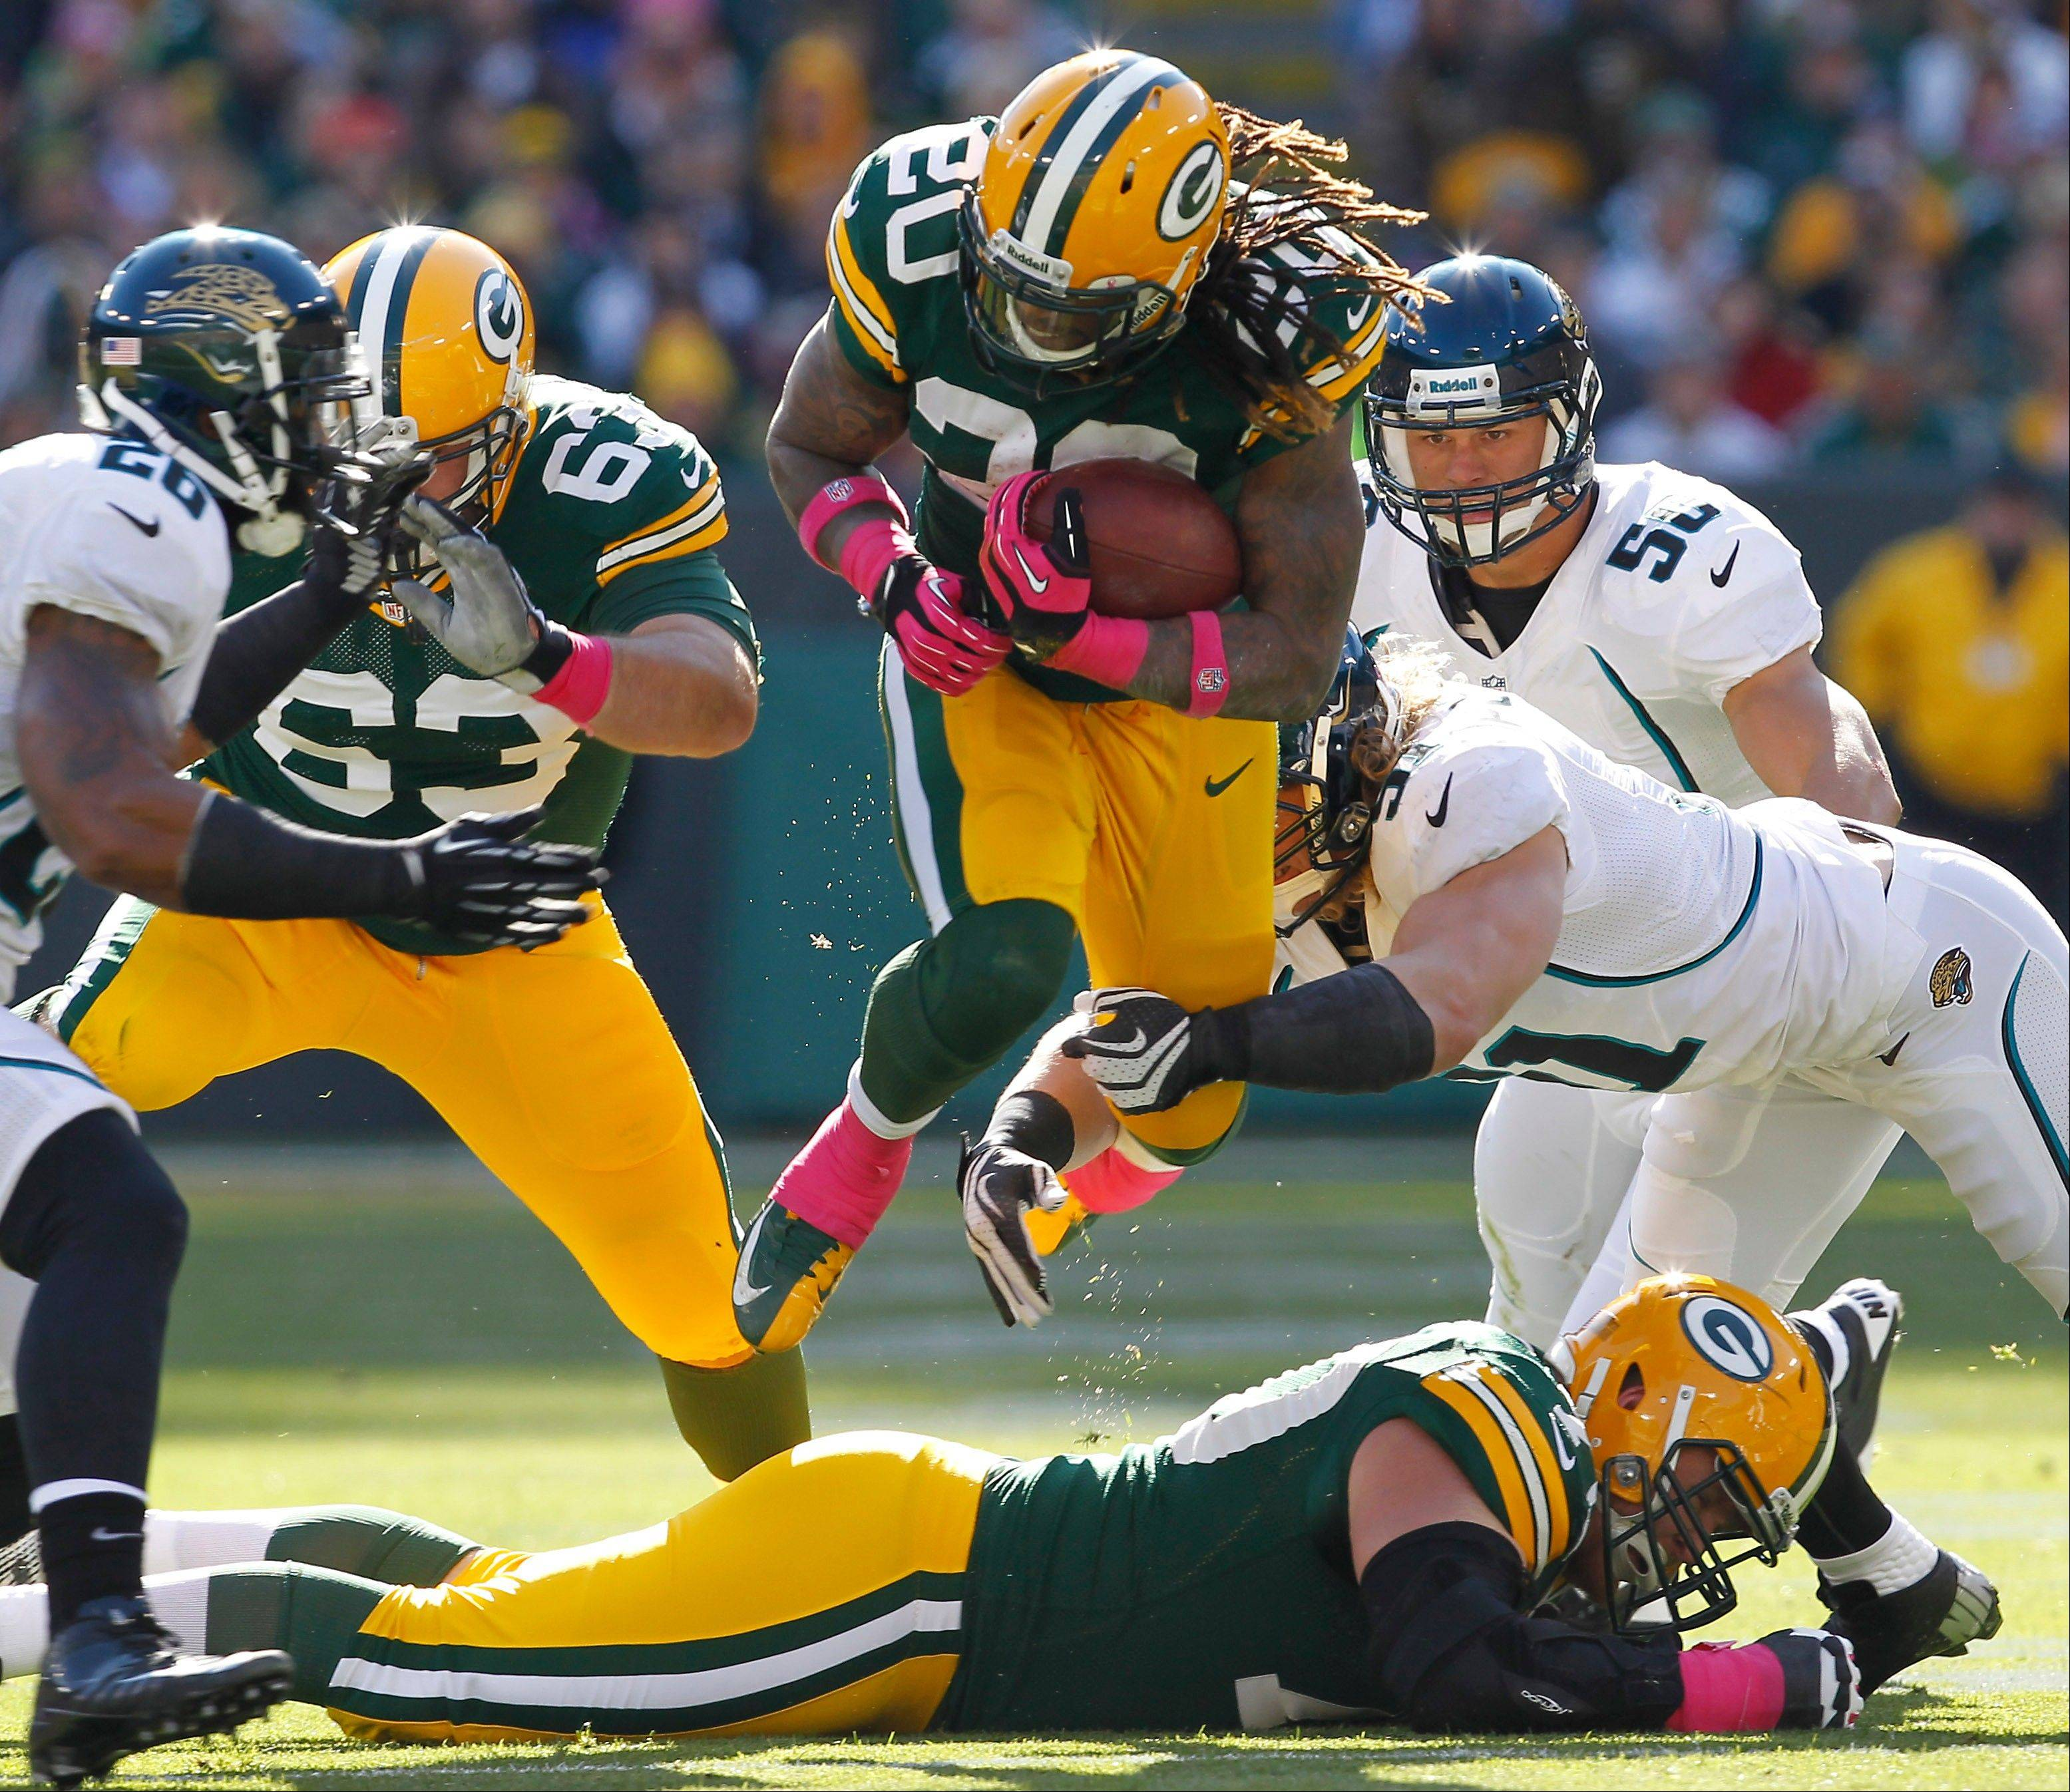 Jacksonville Jaguars middle linebacker Paul Posluszny tackles Green Bay Packers running back Alex Green Sunday. The Packers have a much needed bye week after they face Arizona.